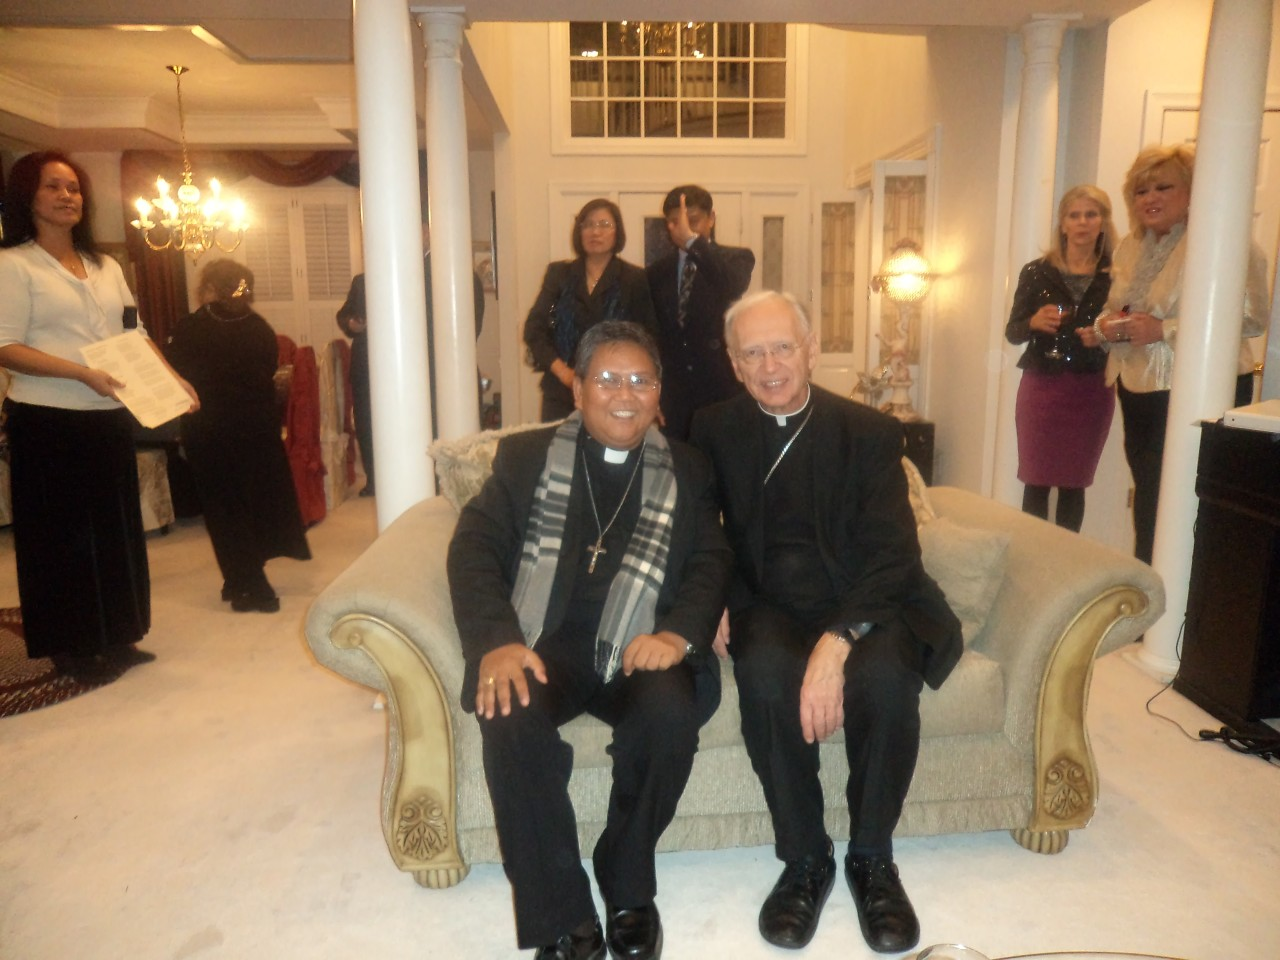 Fr. Abe with Bishop Robert J. Hermann, Auxiliary Emeritus of St. Louis Archdiocese 1